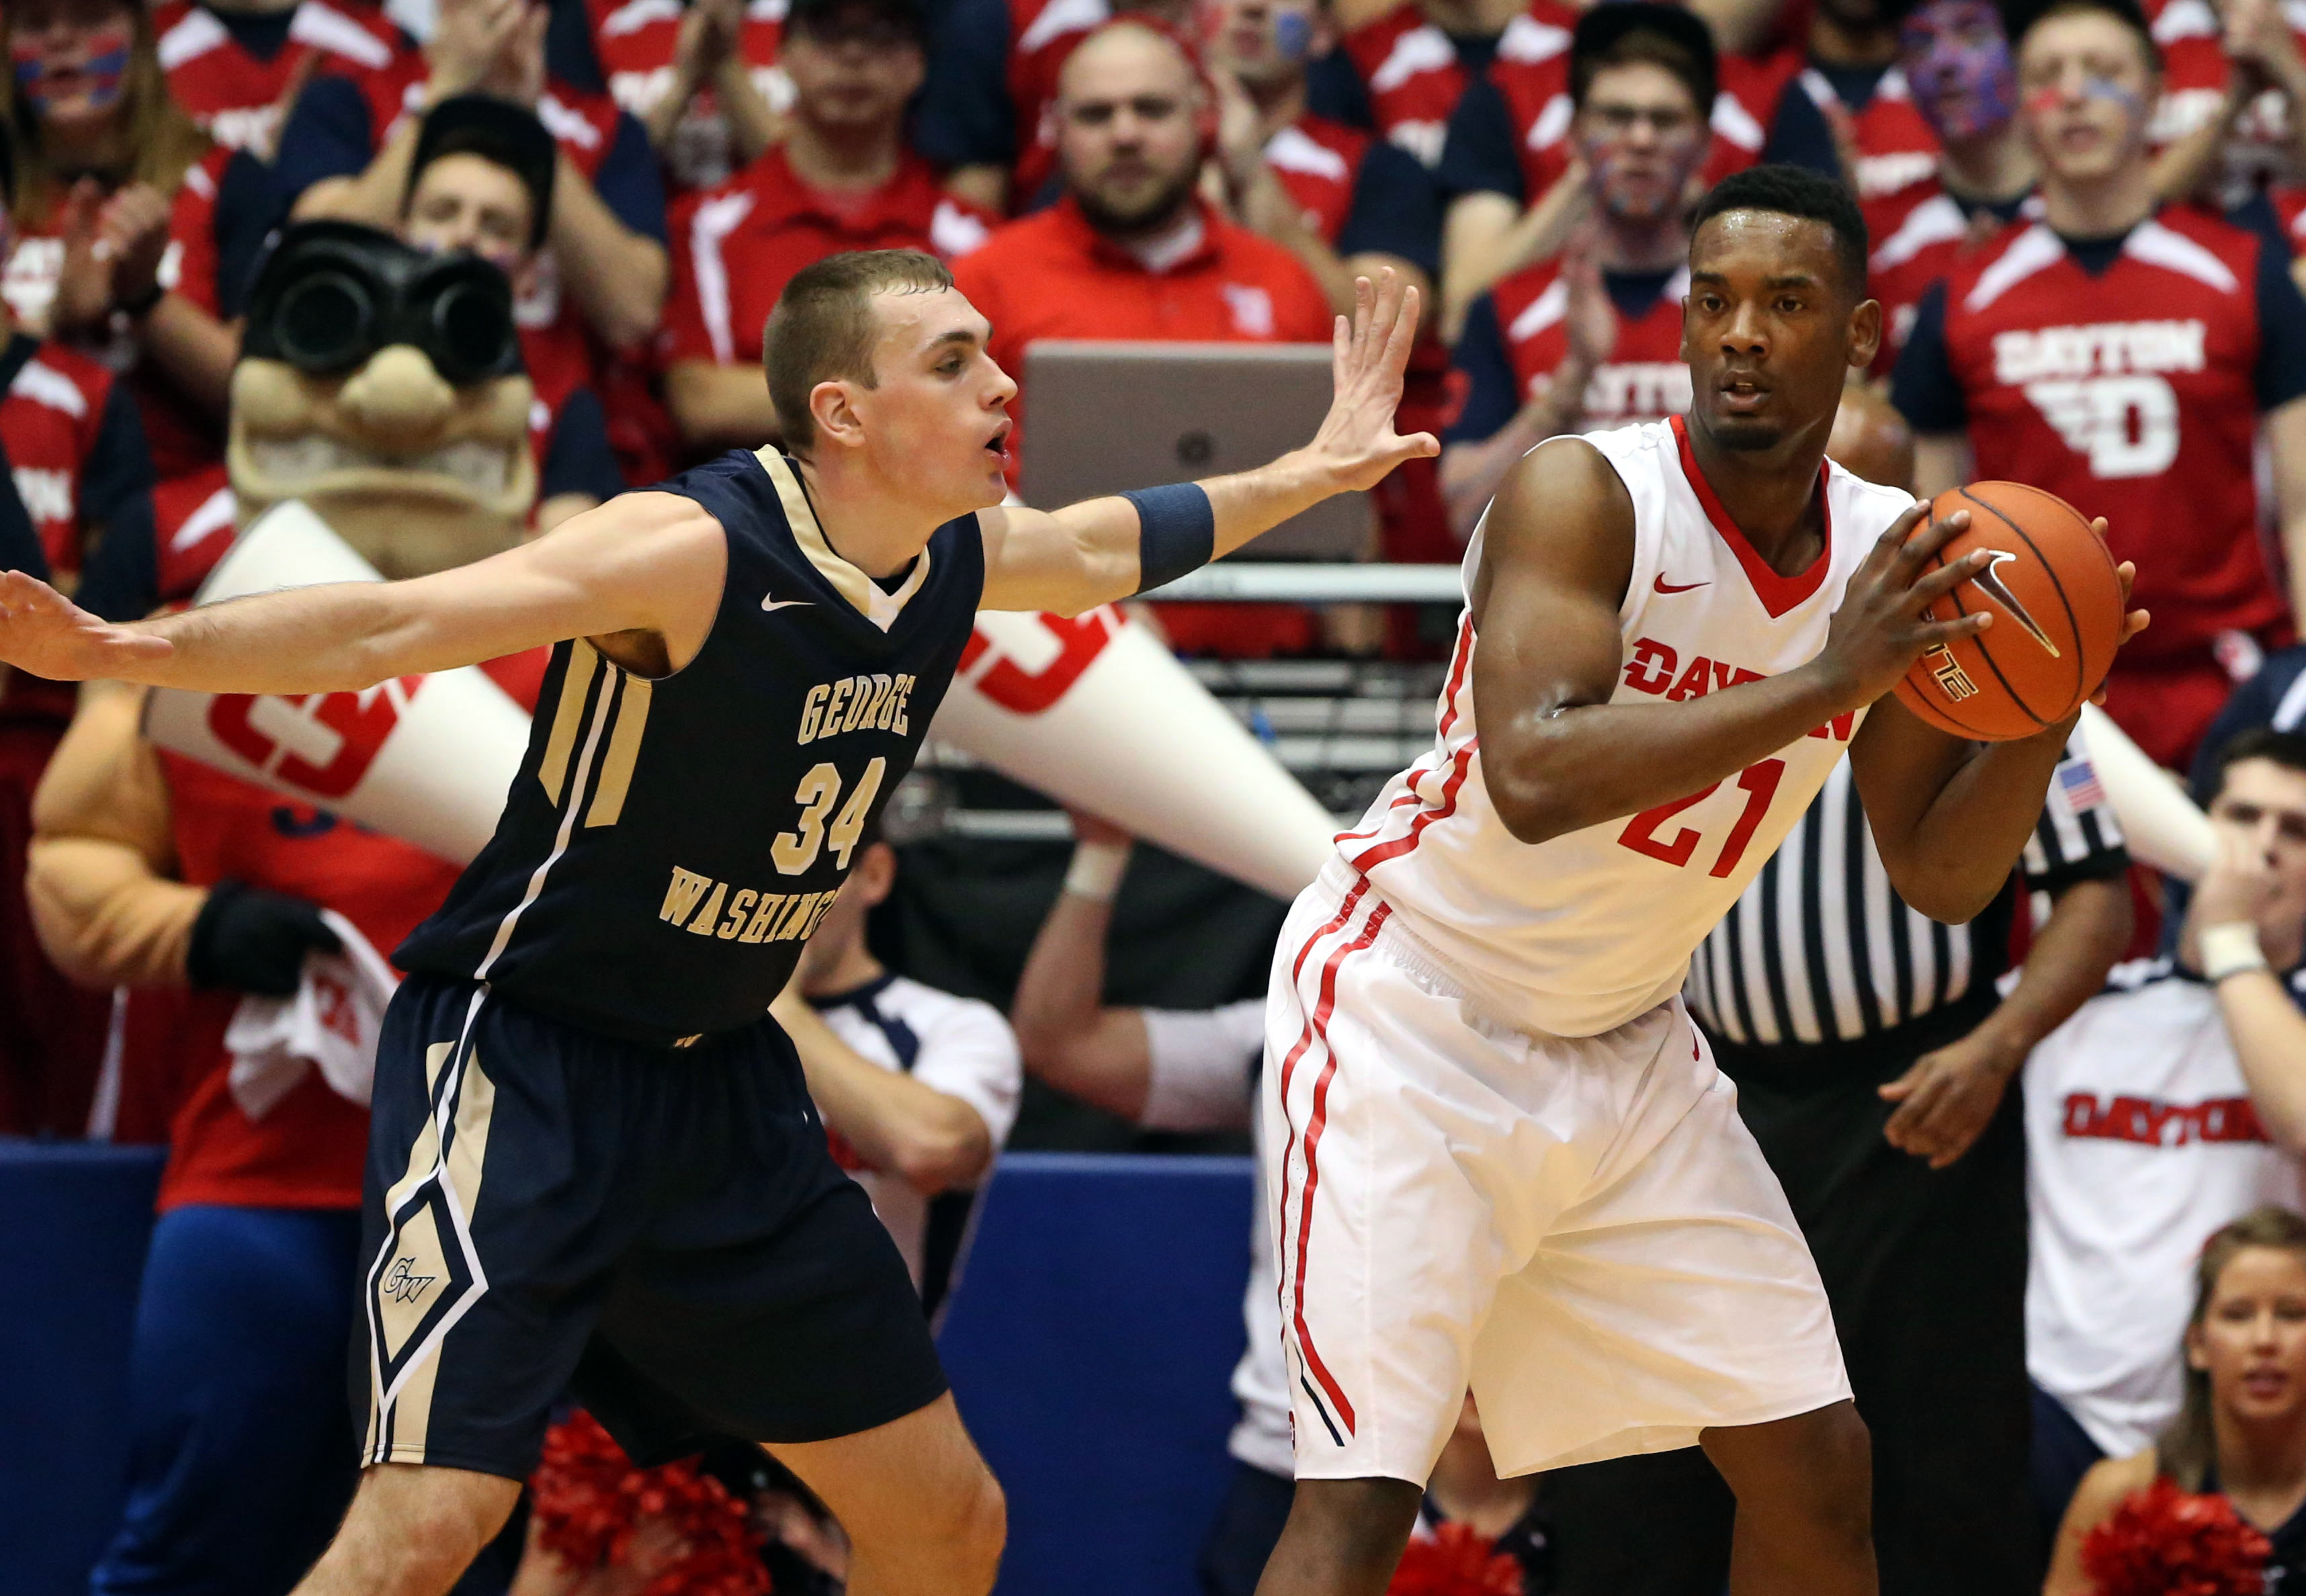 Dyshawn Pierre drops 26 points in Dayton's win over George Washington